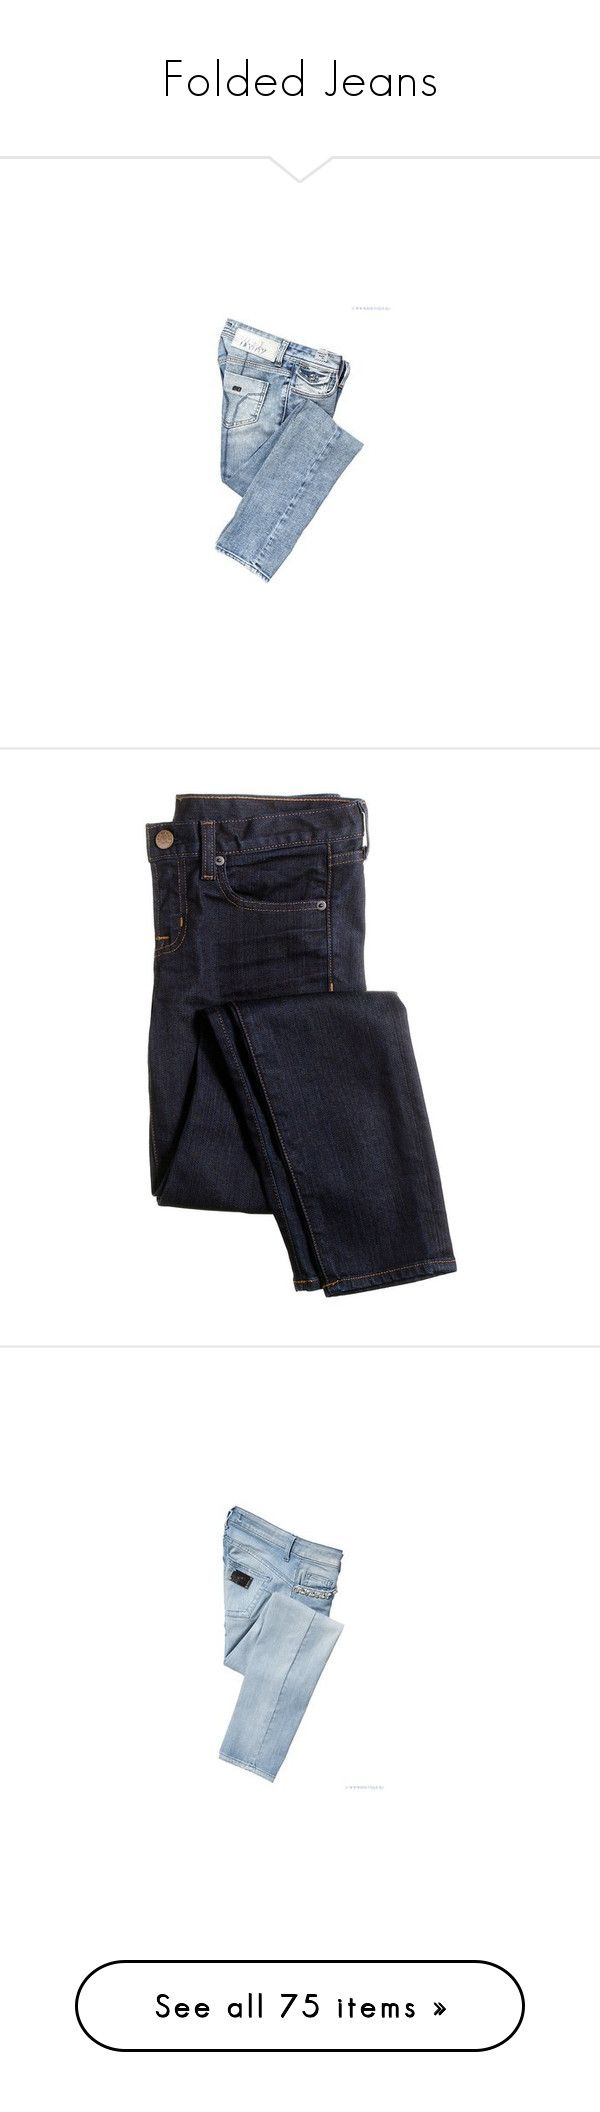 """""""Folded Jeans"""" by yexyka ❤ liked on Polyvore featuring jeans, men's fashion, men's clothing, men's jeans, pants, bottoms, denim, mens destroyed jeans, gold mens jeans and mens blue jeans"""